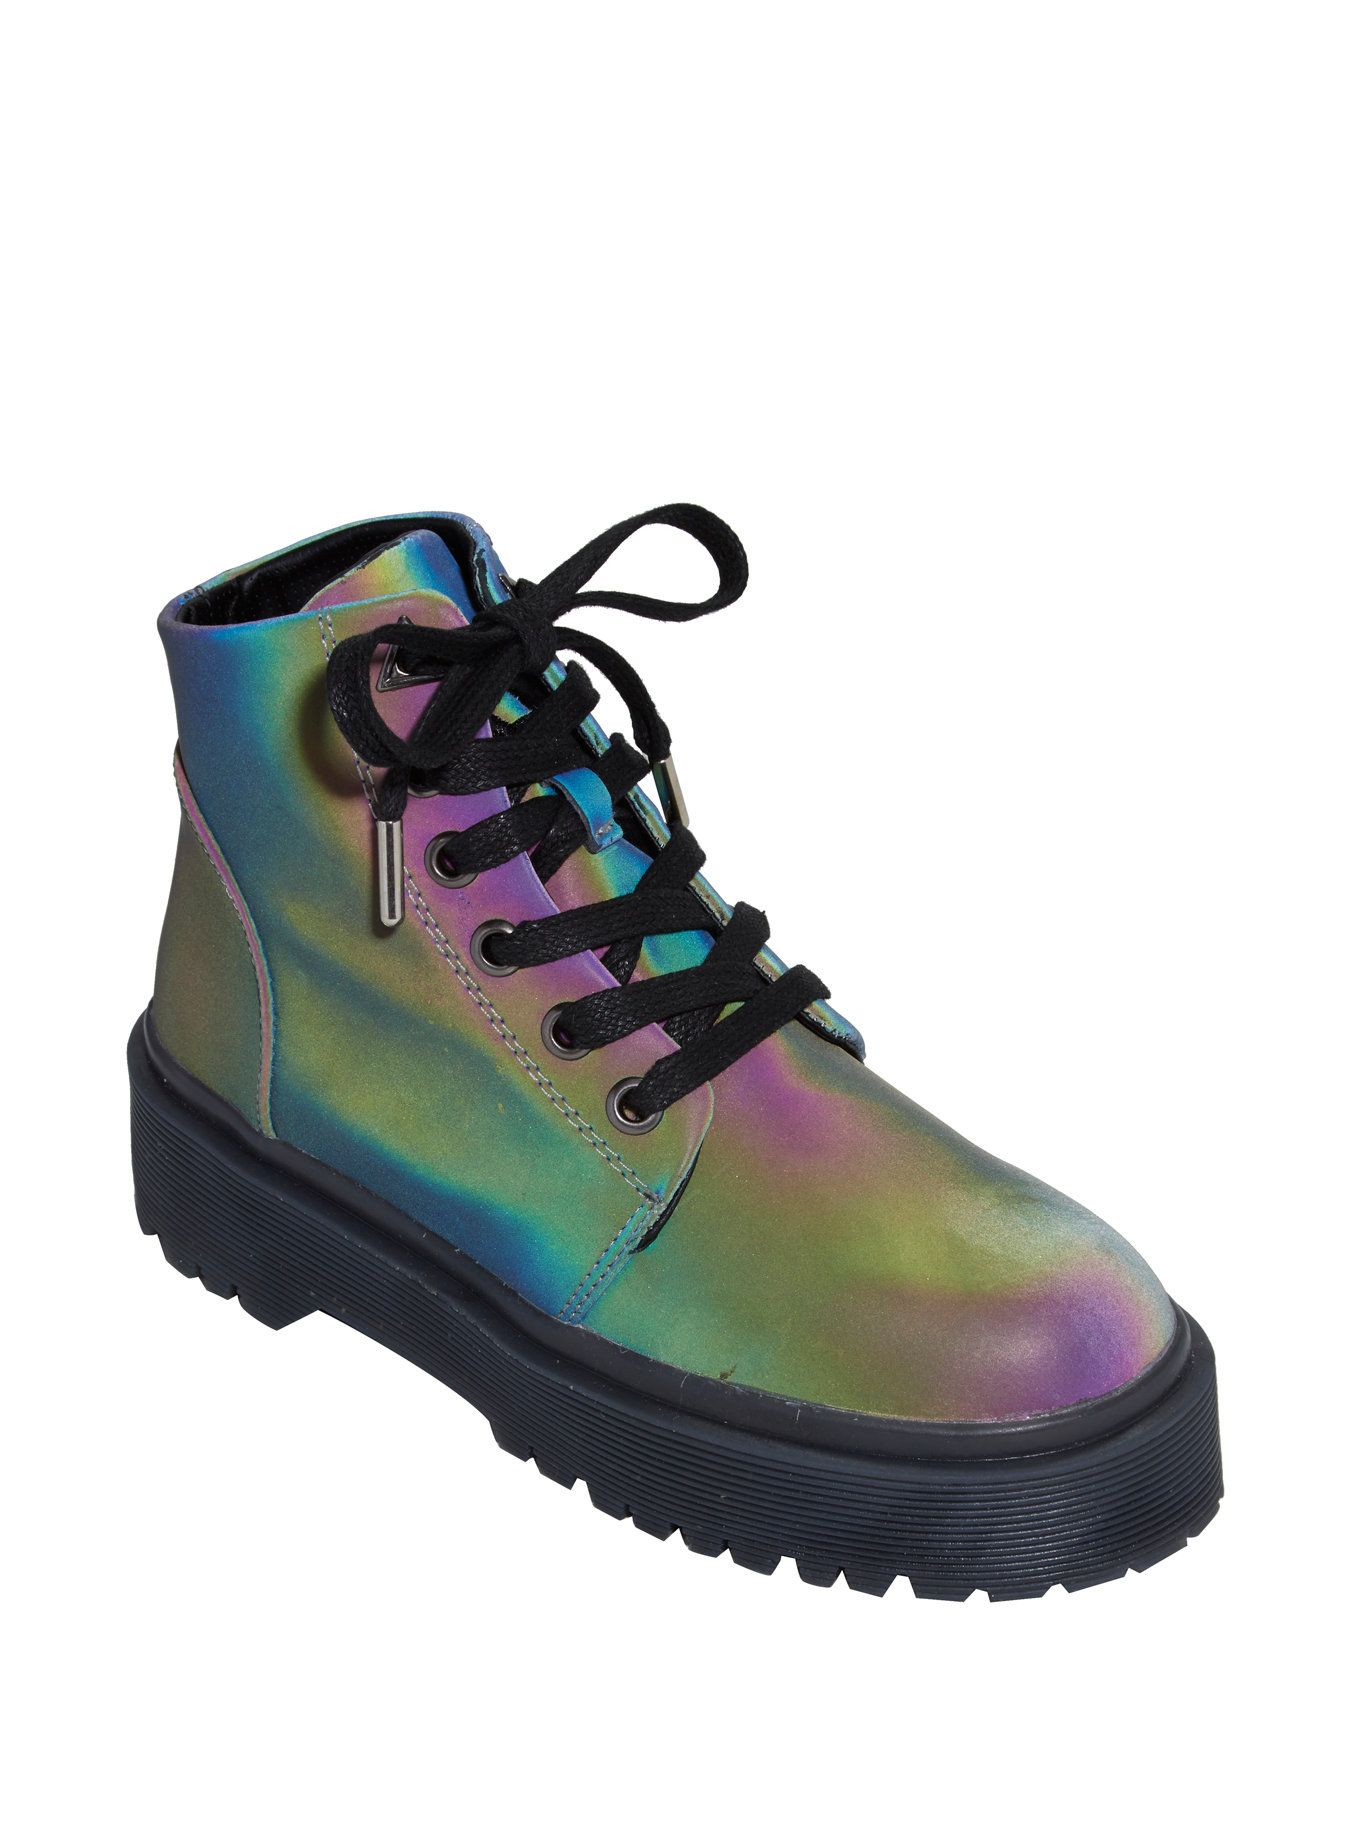 lt div gt These iridescent boots are going to light up your life. The